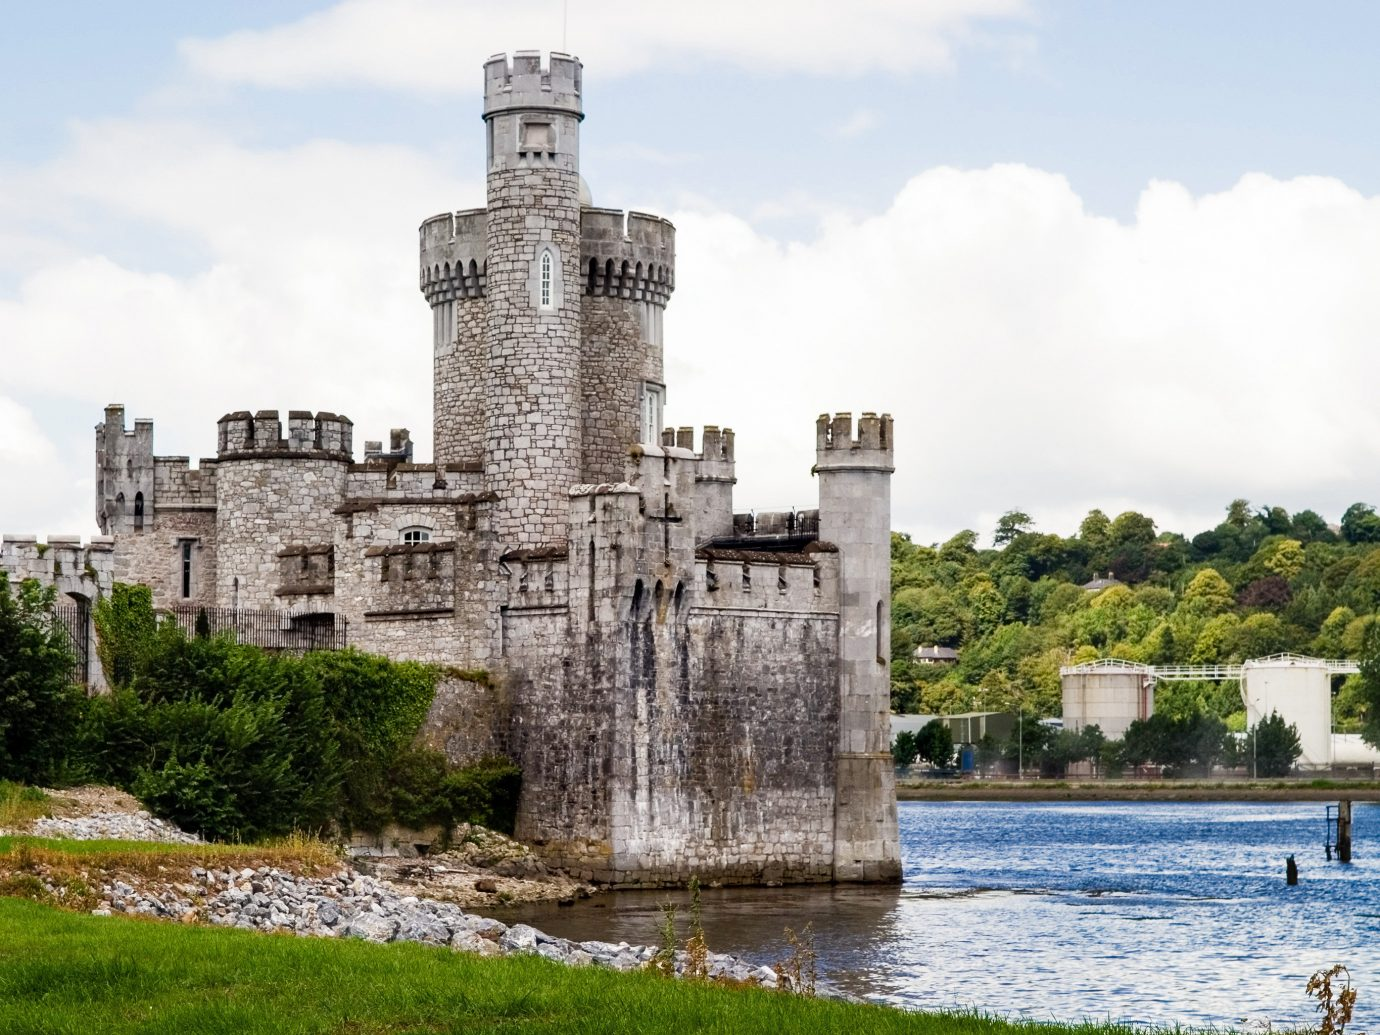 Offbeat sky building outdoor water grass castle moat River water castle fortification national trust for places of historic interest or natural beauty stately home medieval architecture tree château Lake reservoir estate tours old stone